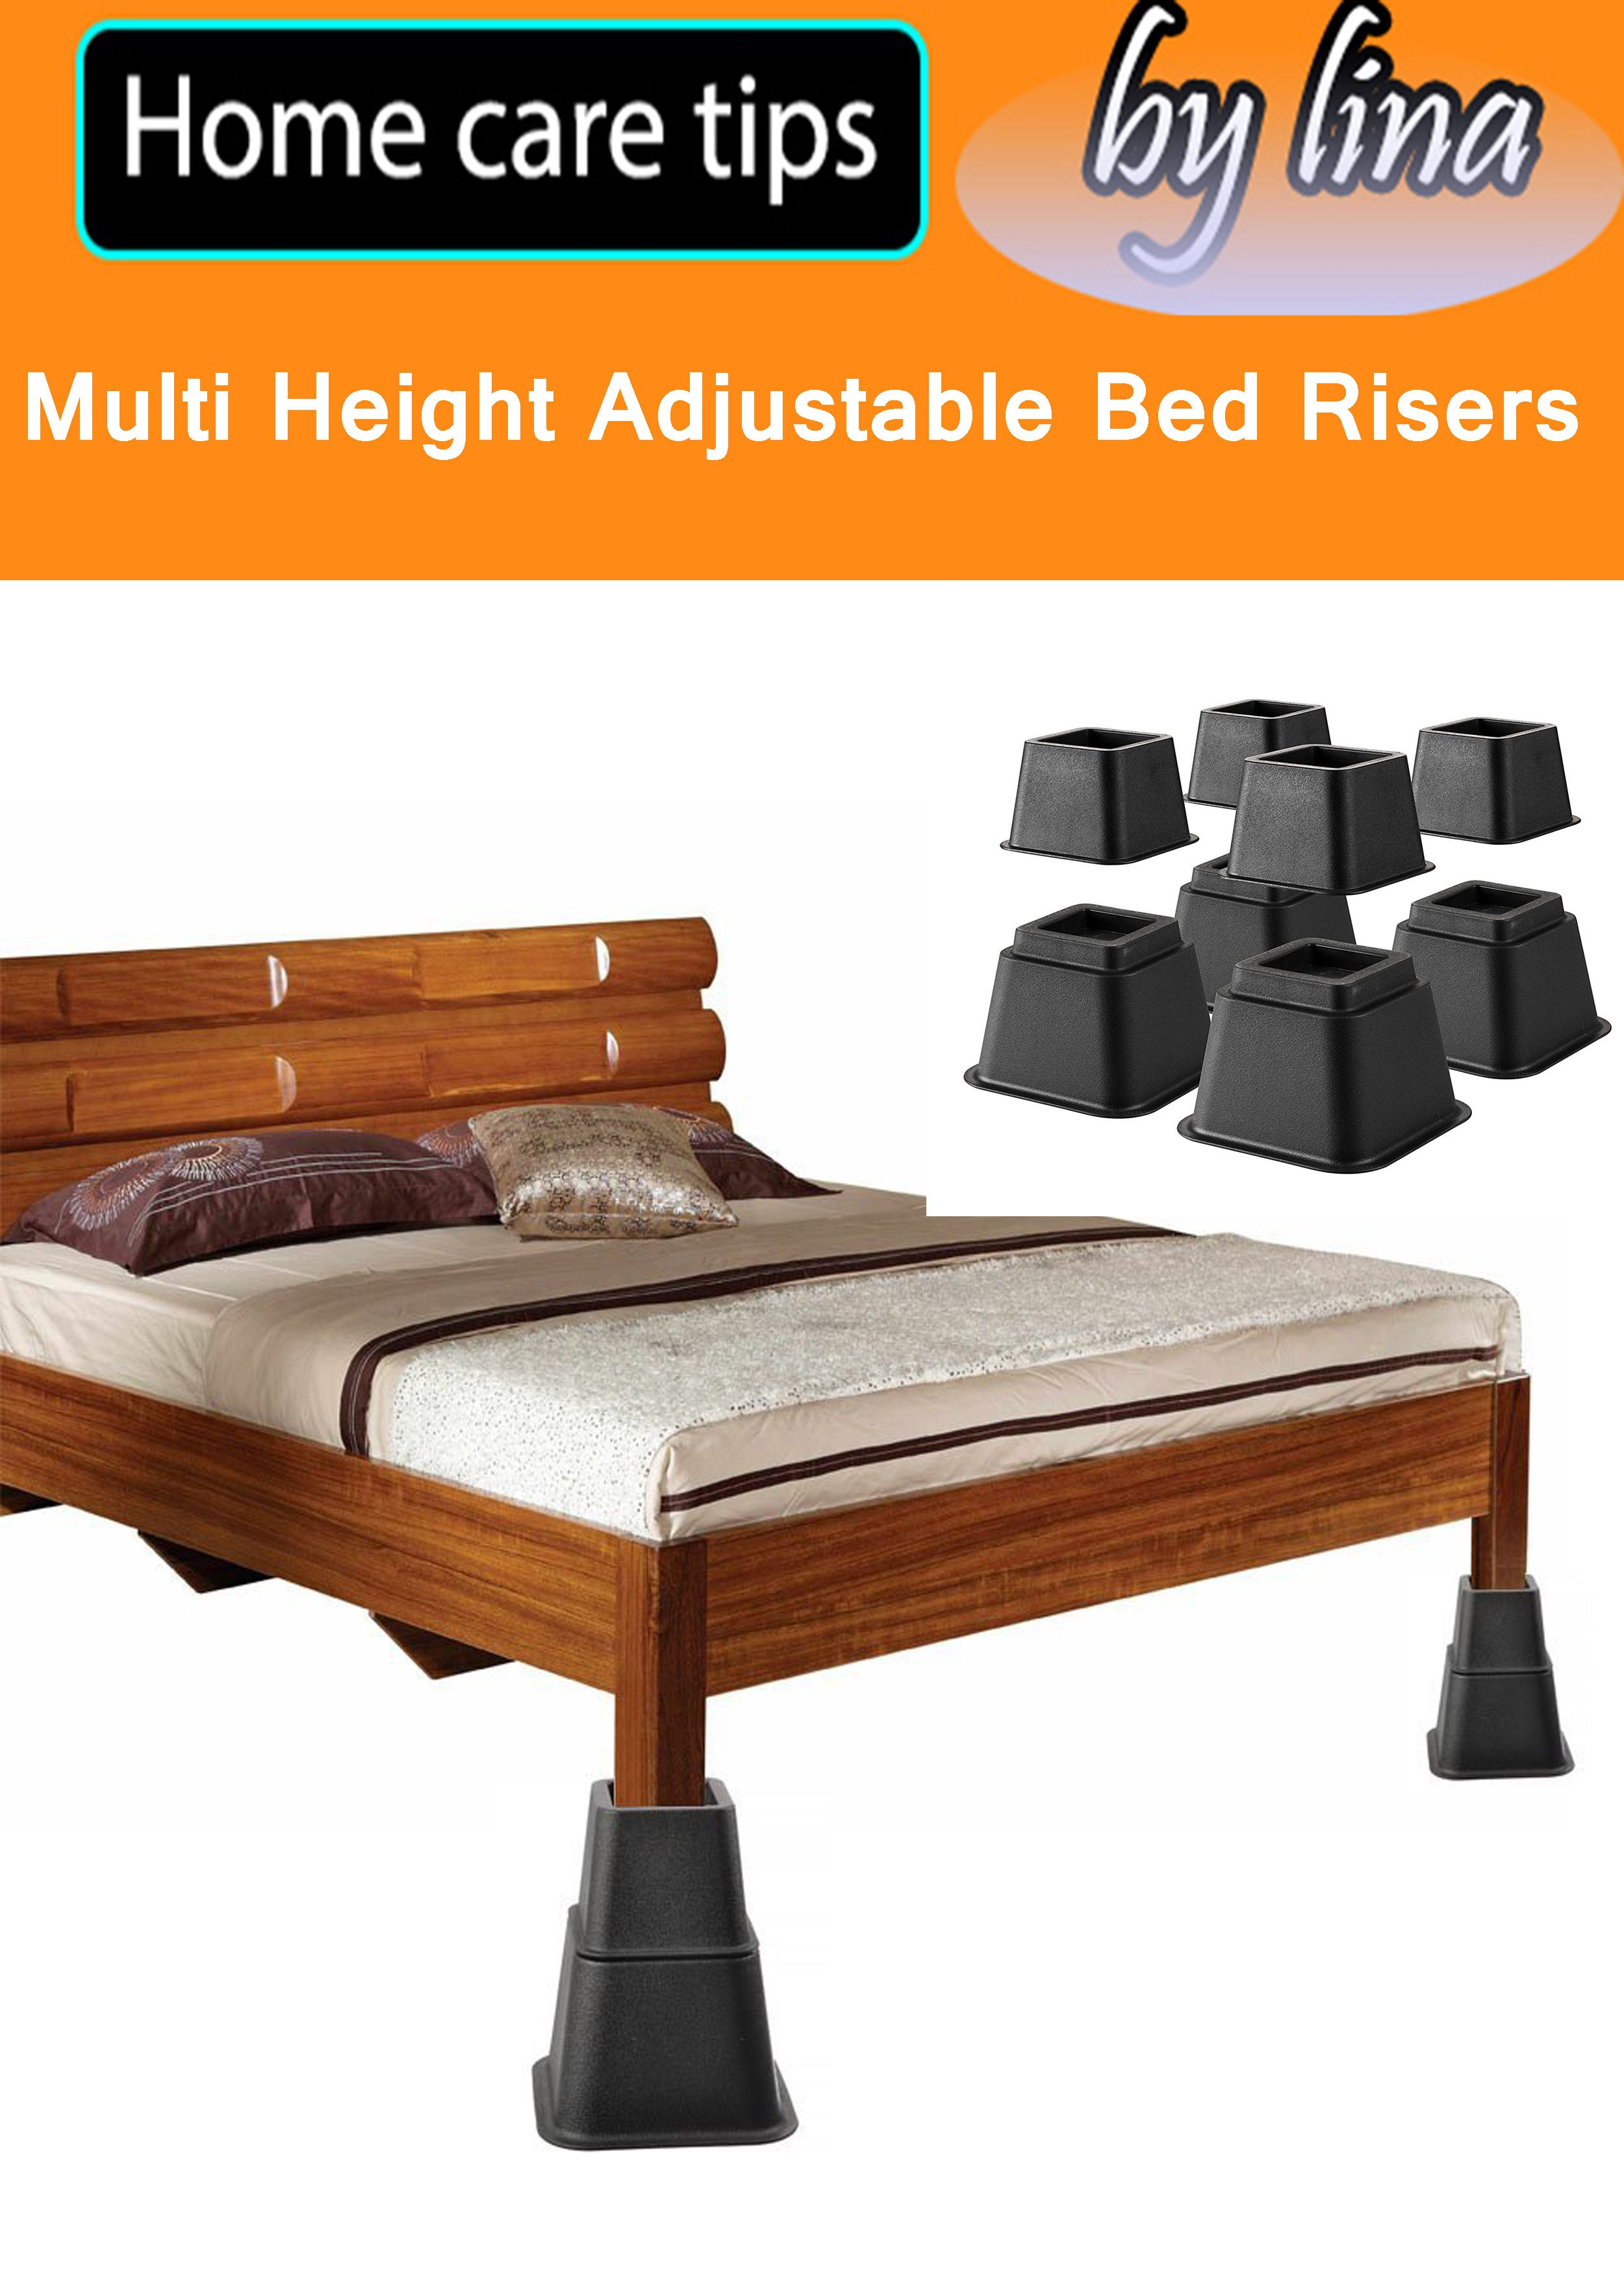 Heavy Duty Multi Height Adjustable Bed Risers Adjustable To 8 5